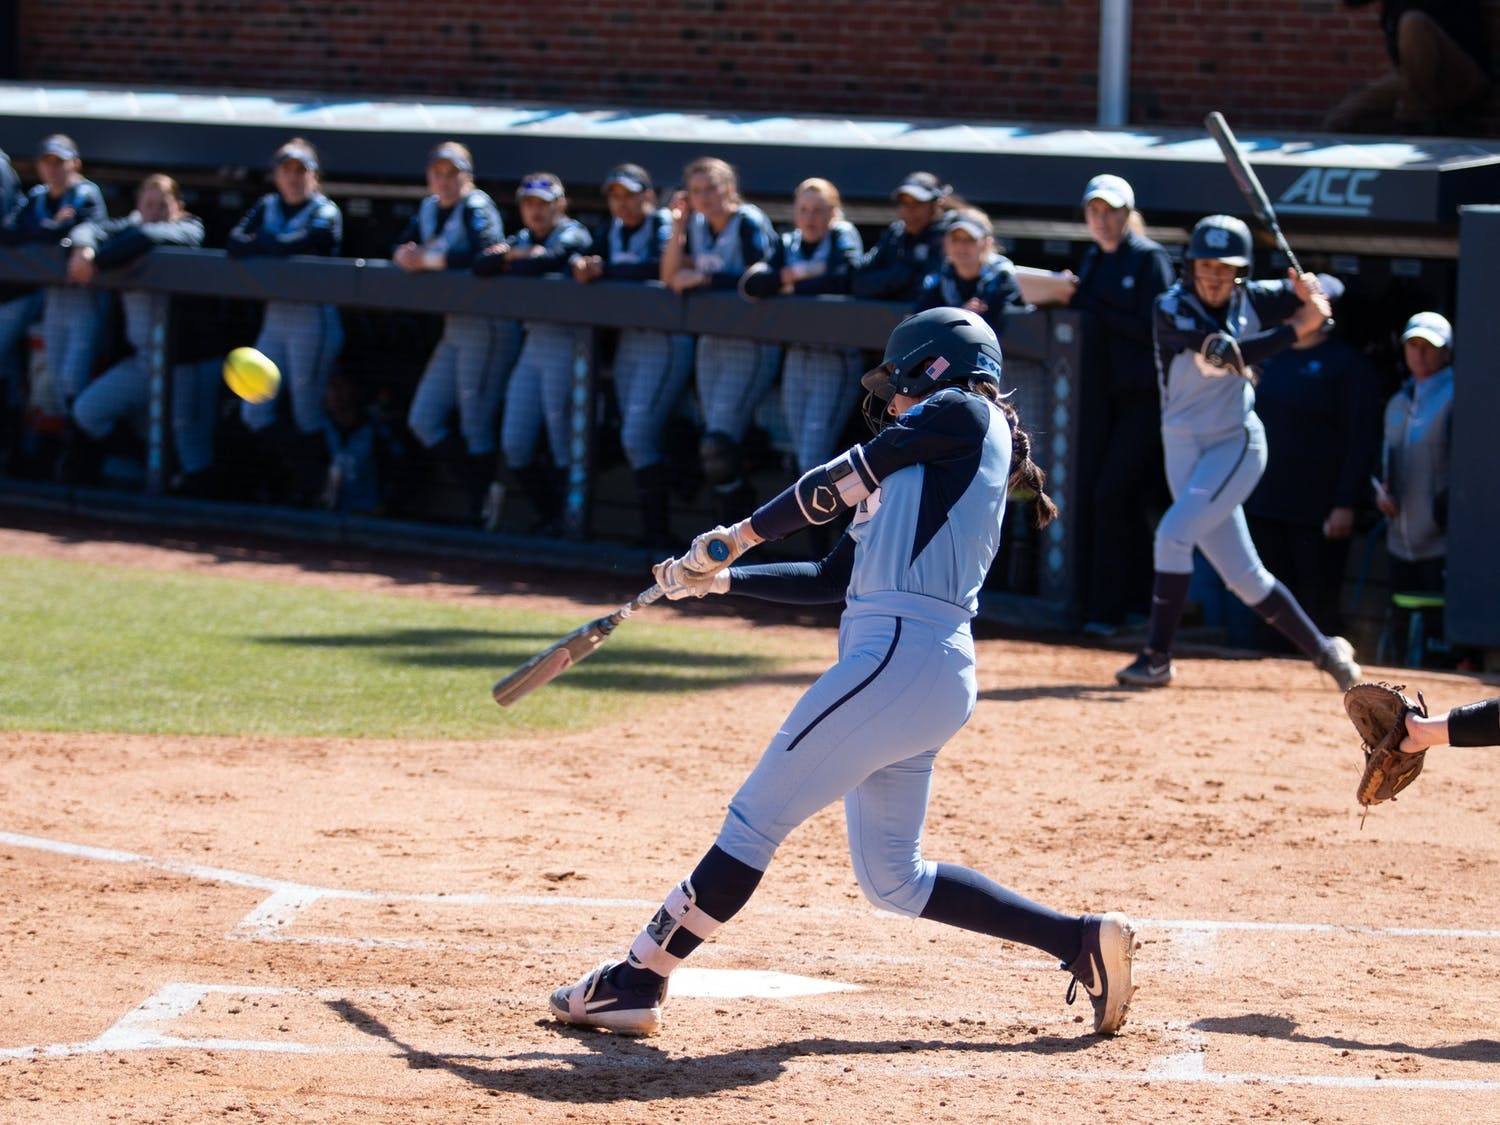 Sophomore first baseman Kiersten Licea (1) hits a home run during the game against Pittsburgh at G. Anderson Softball Stadium on March 1, 2020. UNC won 1-9.